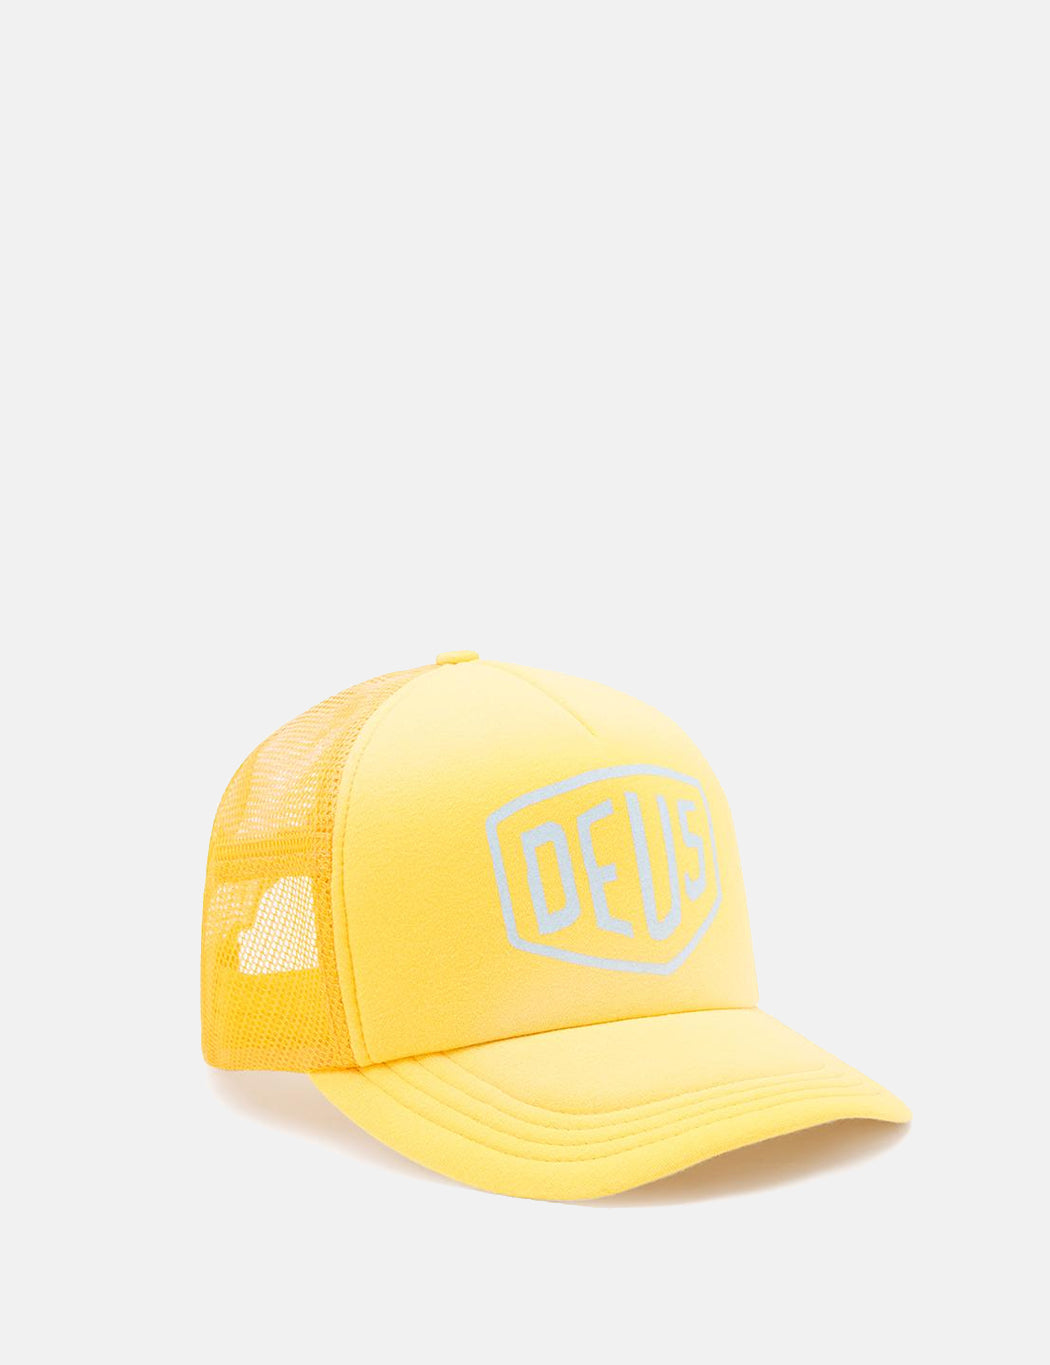 Deus Ex Machina Sunburnt Trucker Cap - Yellow/Lemon